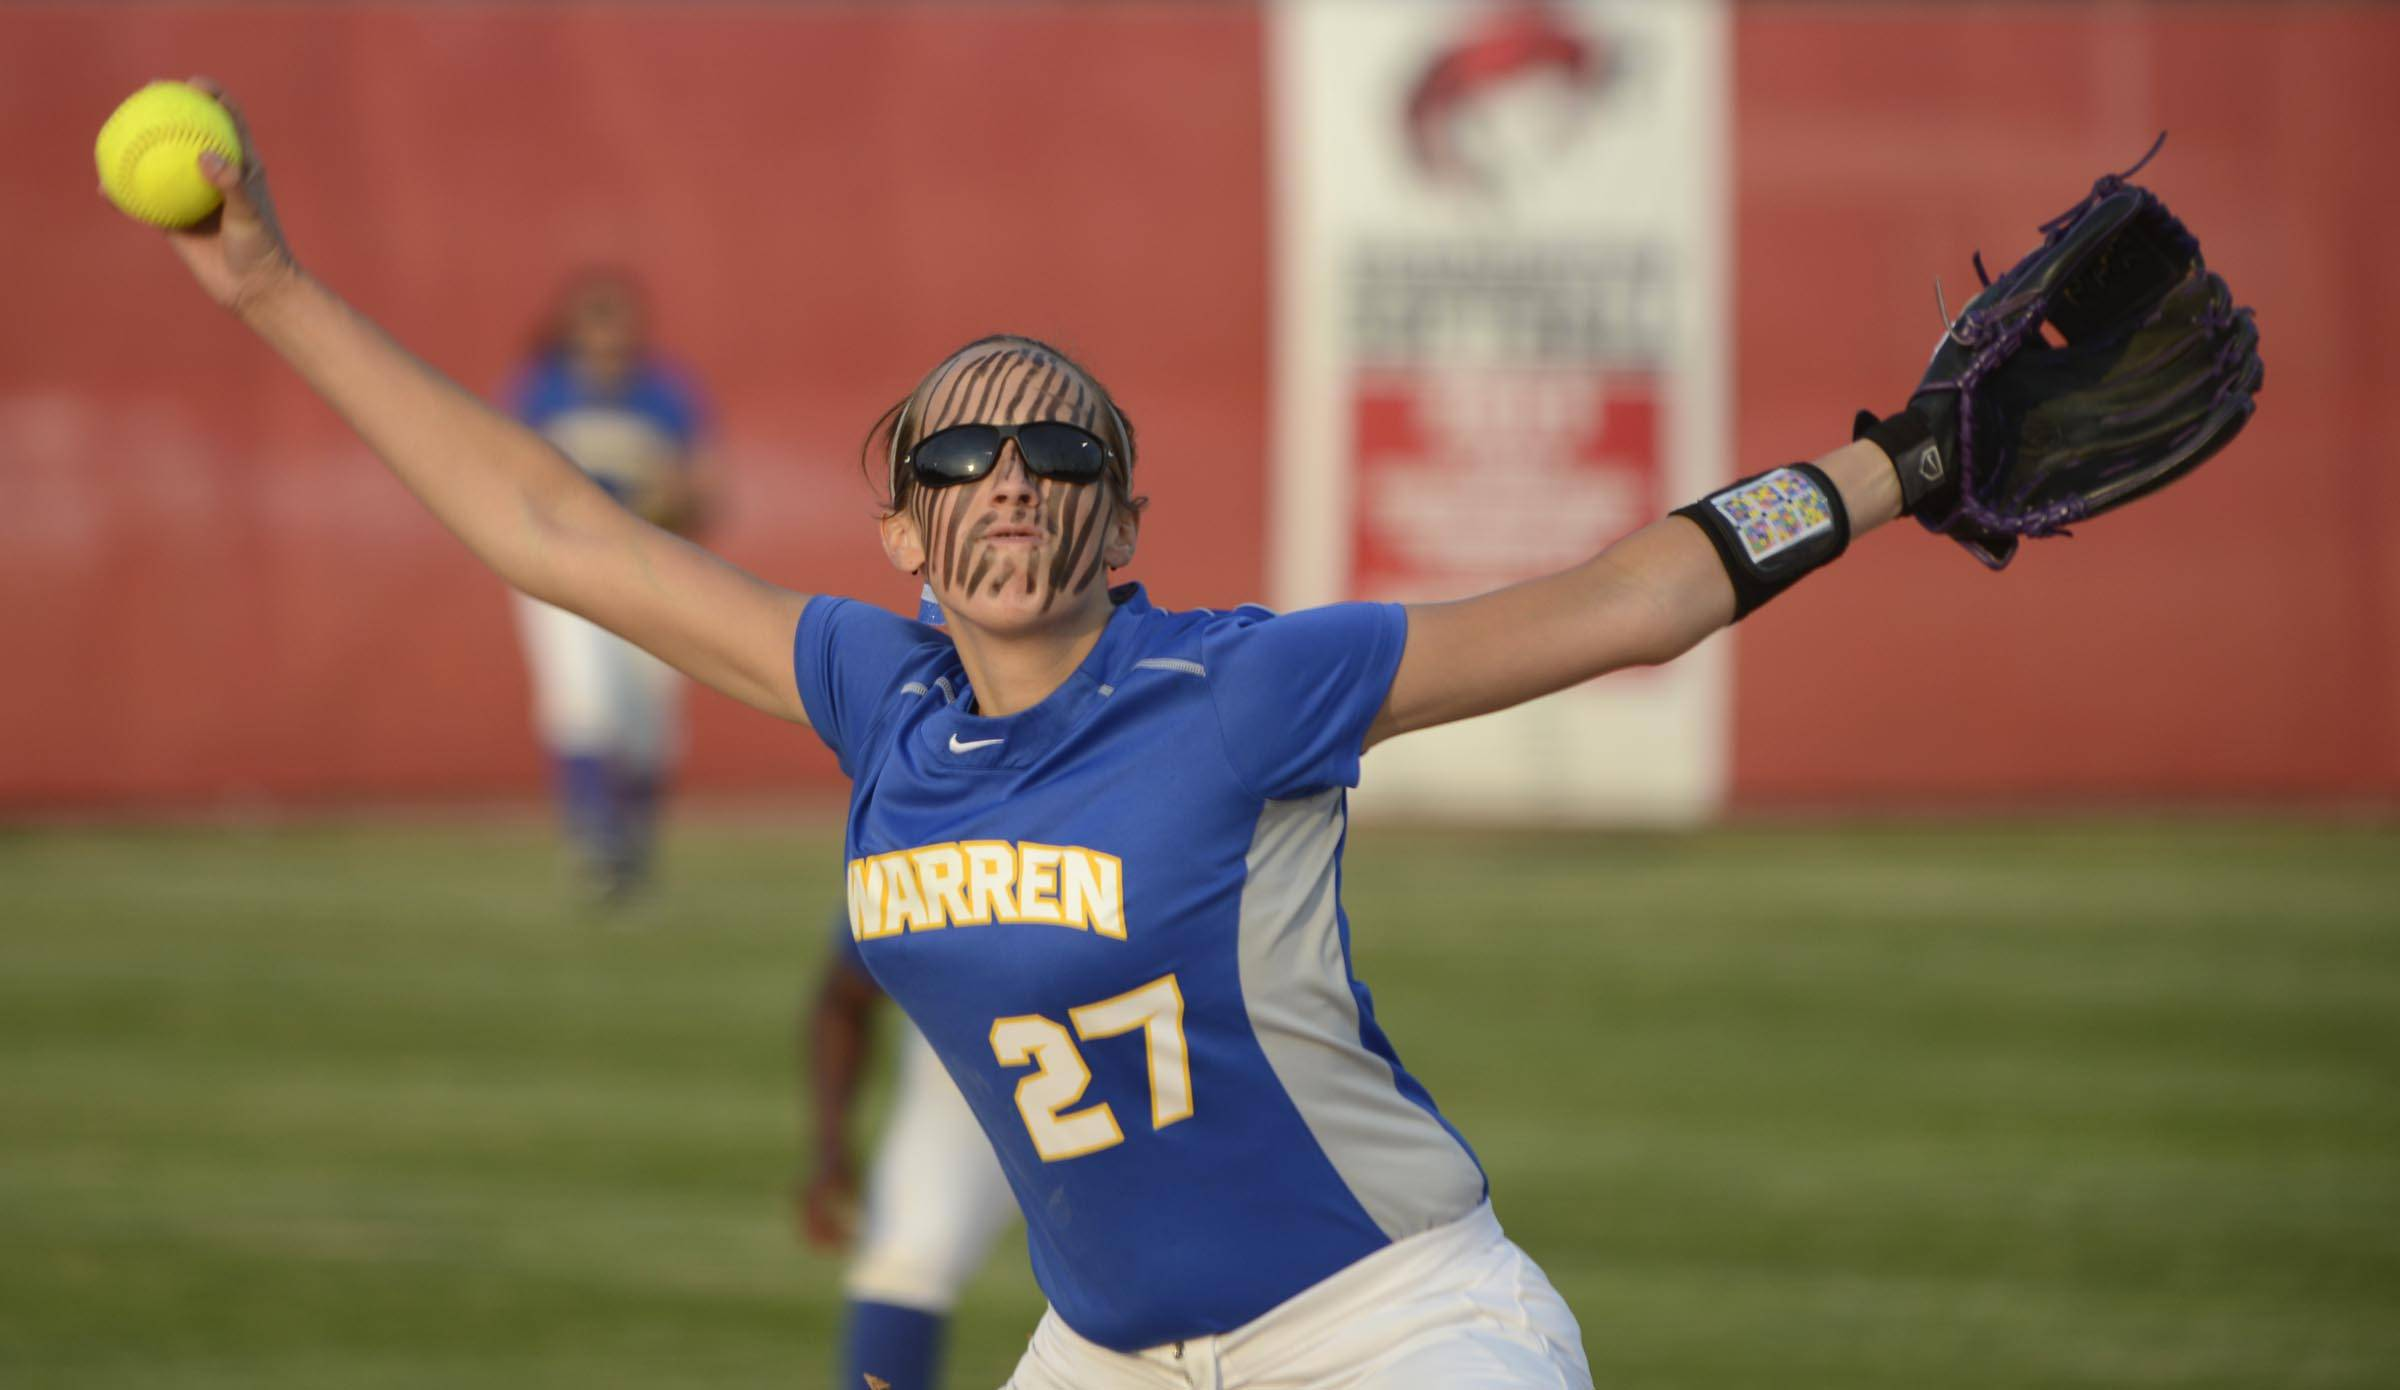 Warren's Jana Wagner delivers against Barrington in the Class 4A Barrington supersectional Monday.